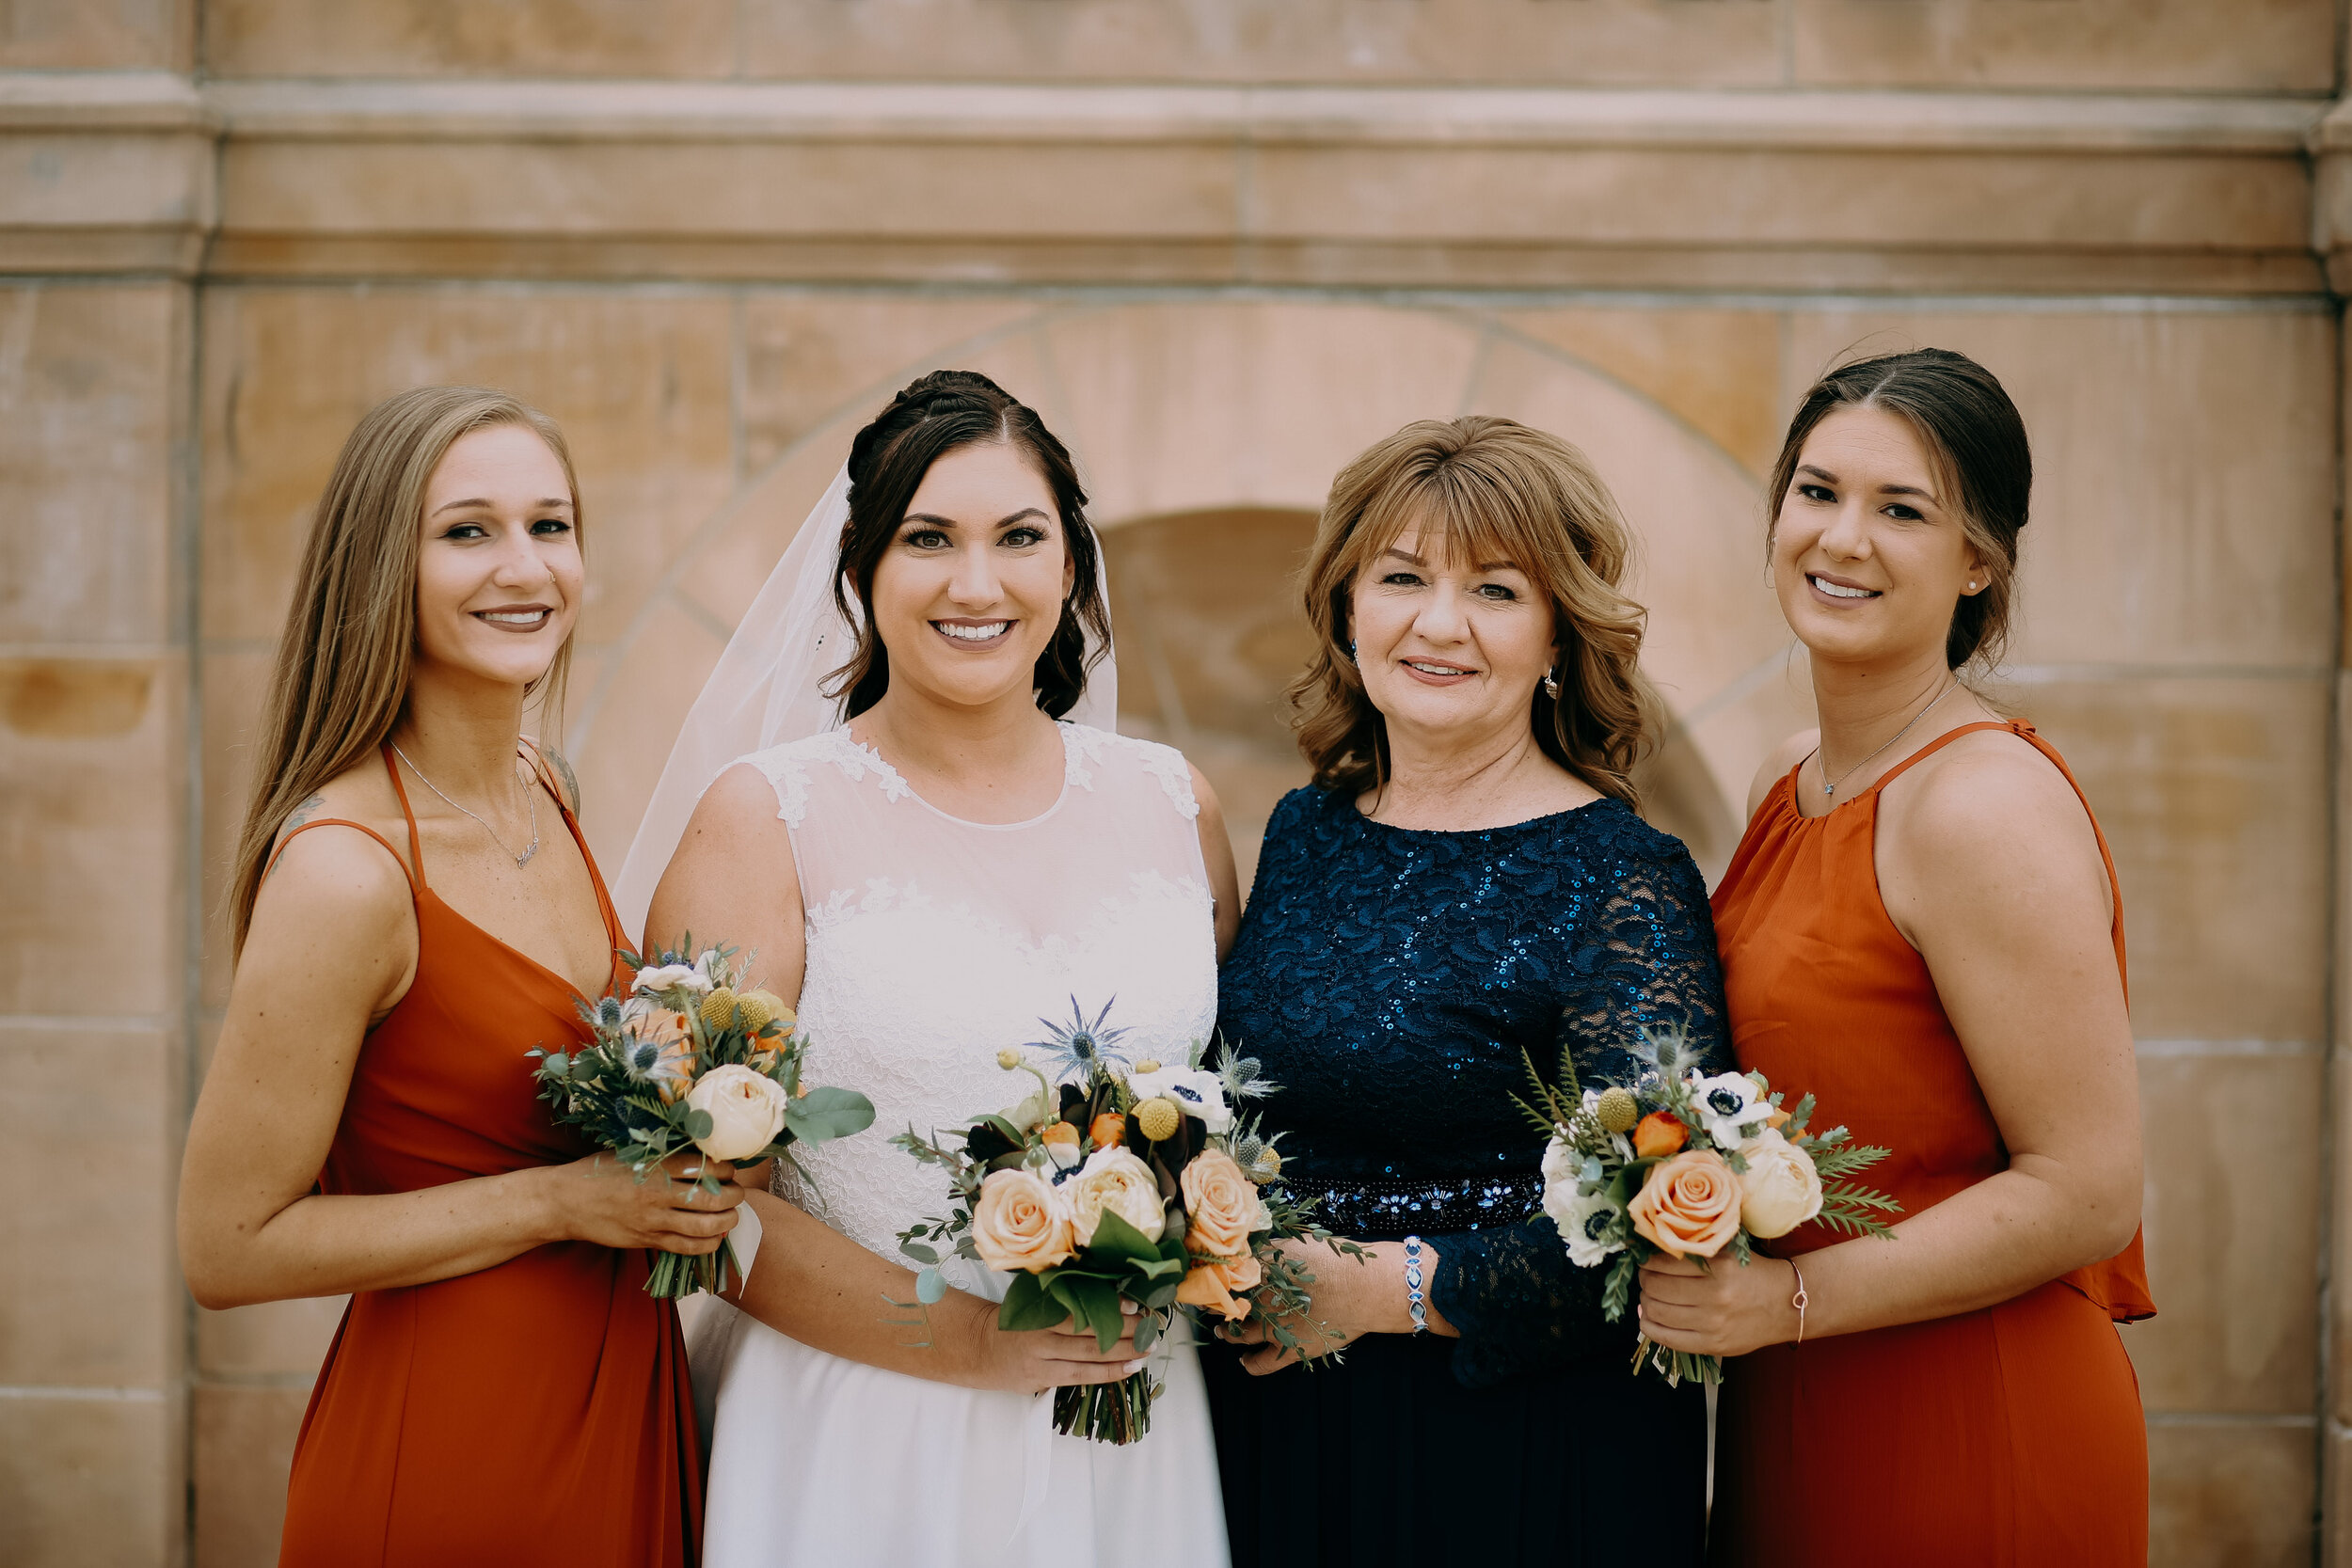 bridesmaids in rust colored halter wedding dresses pose with the mother of the bride in dark navy and lace formal dress, while holding bouquets of blush roses and white poppies with eucalyptus